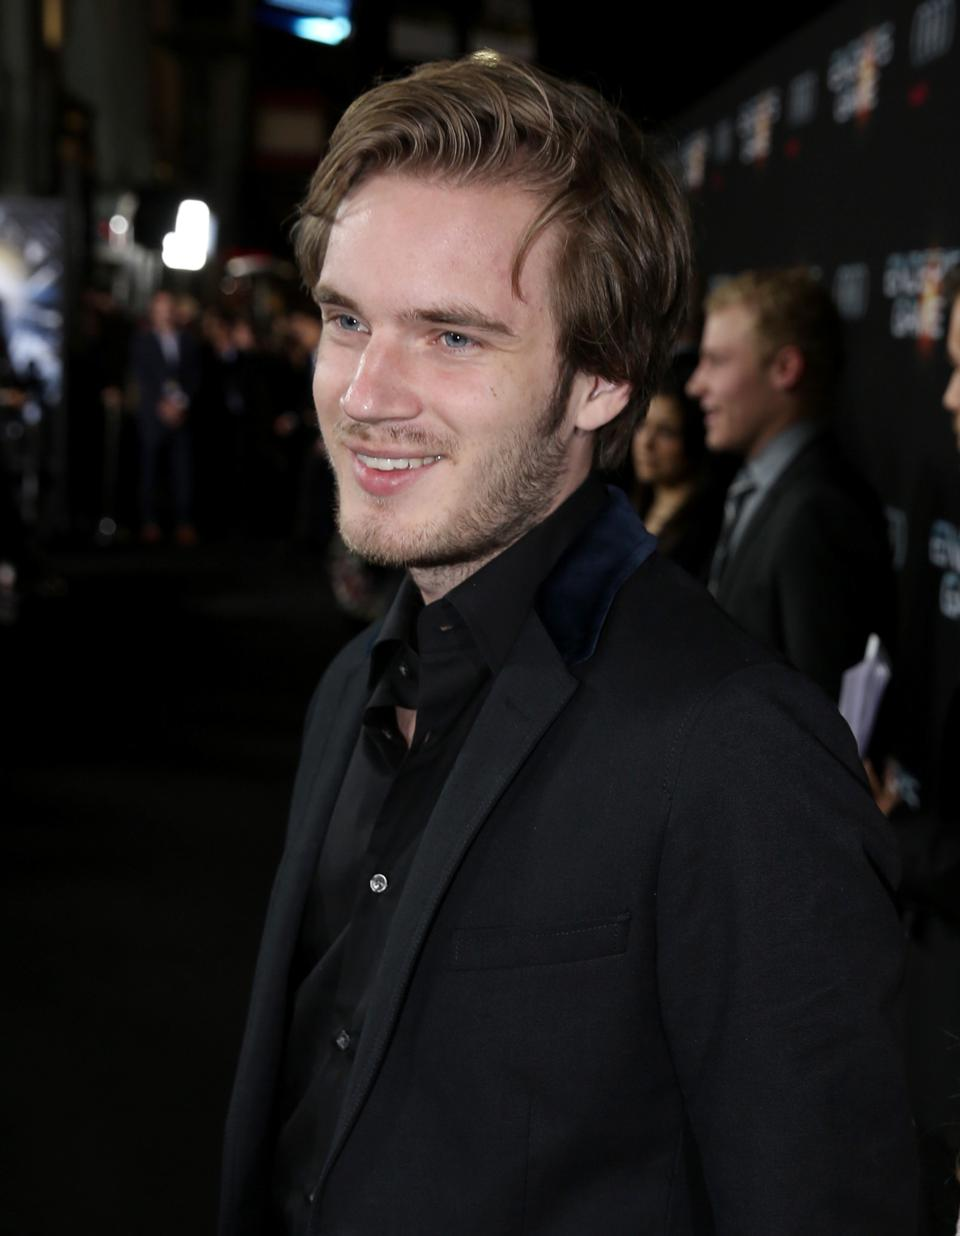 What I Don't Understand About PewDiePie